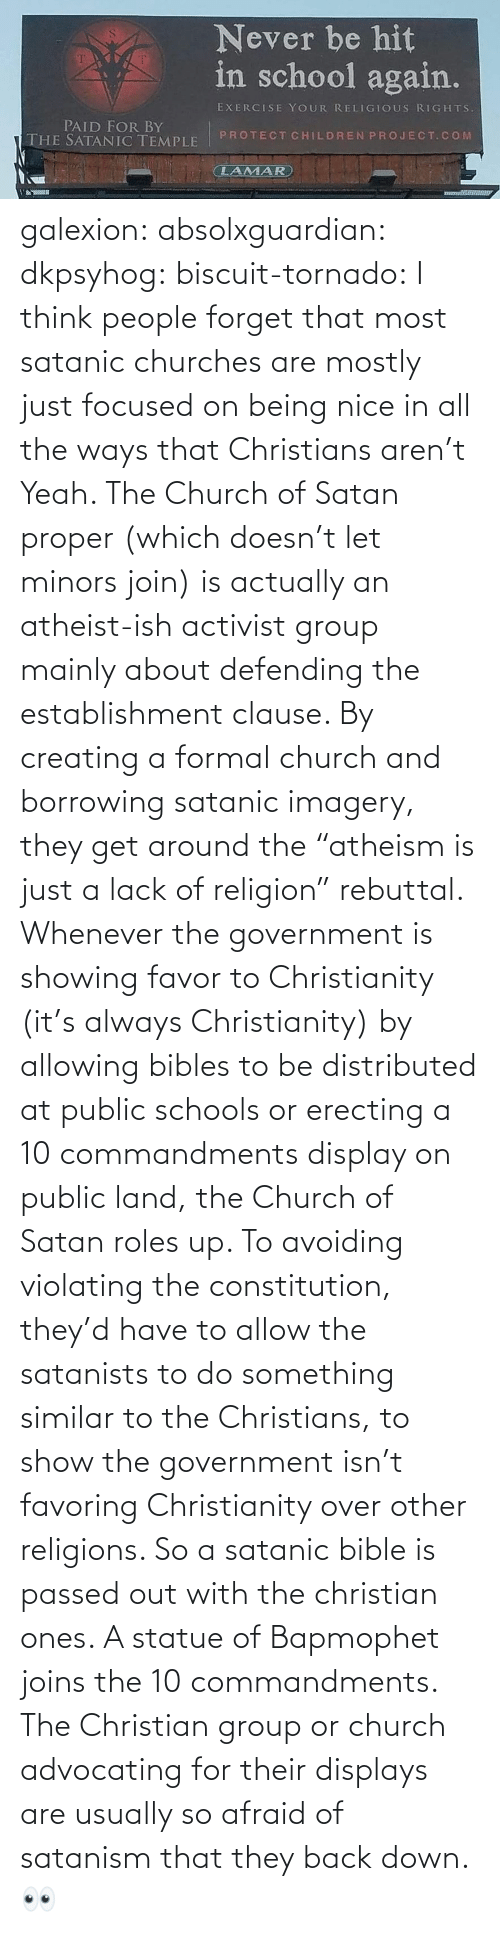 "Church: galexion:  absolxguardian:  dkpsyhog:  biscuit-tornado:     I think people forget that most satanic churches are mostly just focused on being nice in all the ways that Christians aren't  Yeah. The Church of Satan proper (which doesn't let minors join) is actually an atheist-ish activist group mainly about defending the establishment clause. By creating a formal church and borrowing satanic imagery, they get around the ""atheism is just a lack of religion"" rebuttal. Whenever the government is showing favor to Christianity (it's always Christianity) by allowing bibles to be distributed at public schools or erecting a 10 commandments display on public land, the Church of Satan roles up. To avoiding violating the constitution, they'd have to allow the satanists to do something similar to the Christians, to show the government isn't favoring Christianity over other religions. So a satanic bible is passed out with the christian ones. A statue of Bapmophet joins the 10 commandments. The Christian group or church advocating for their displays are usually so afraid of satanism that they back down.   👀"